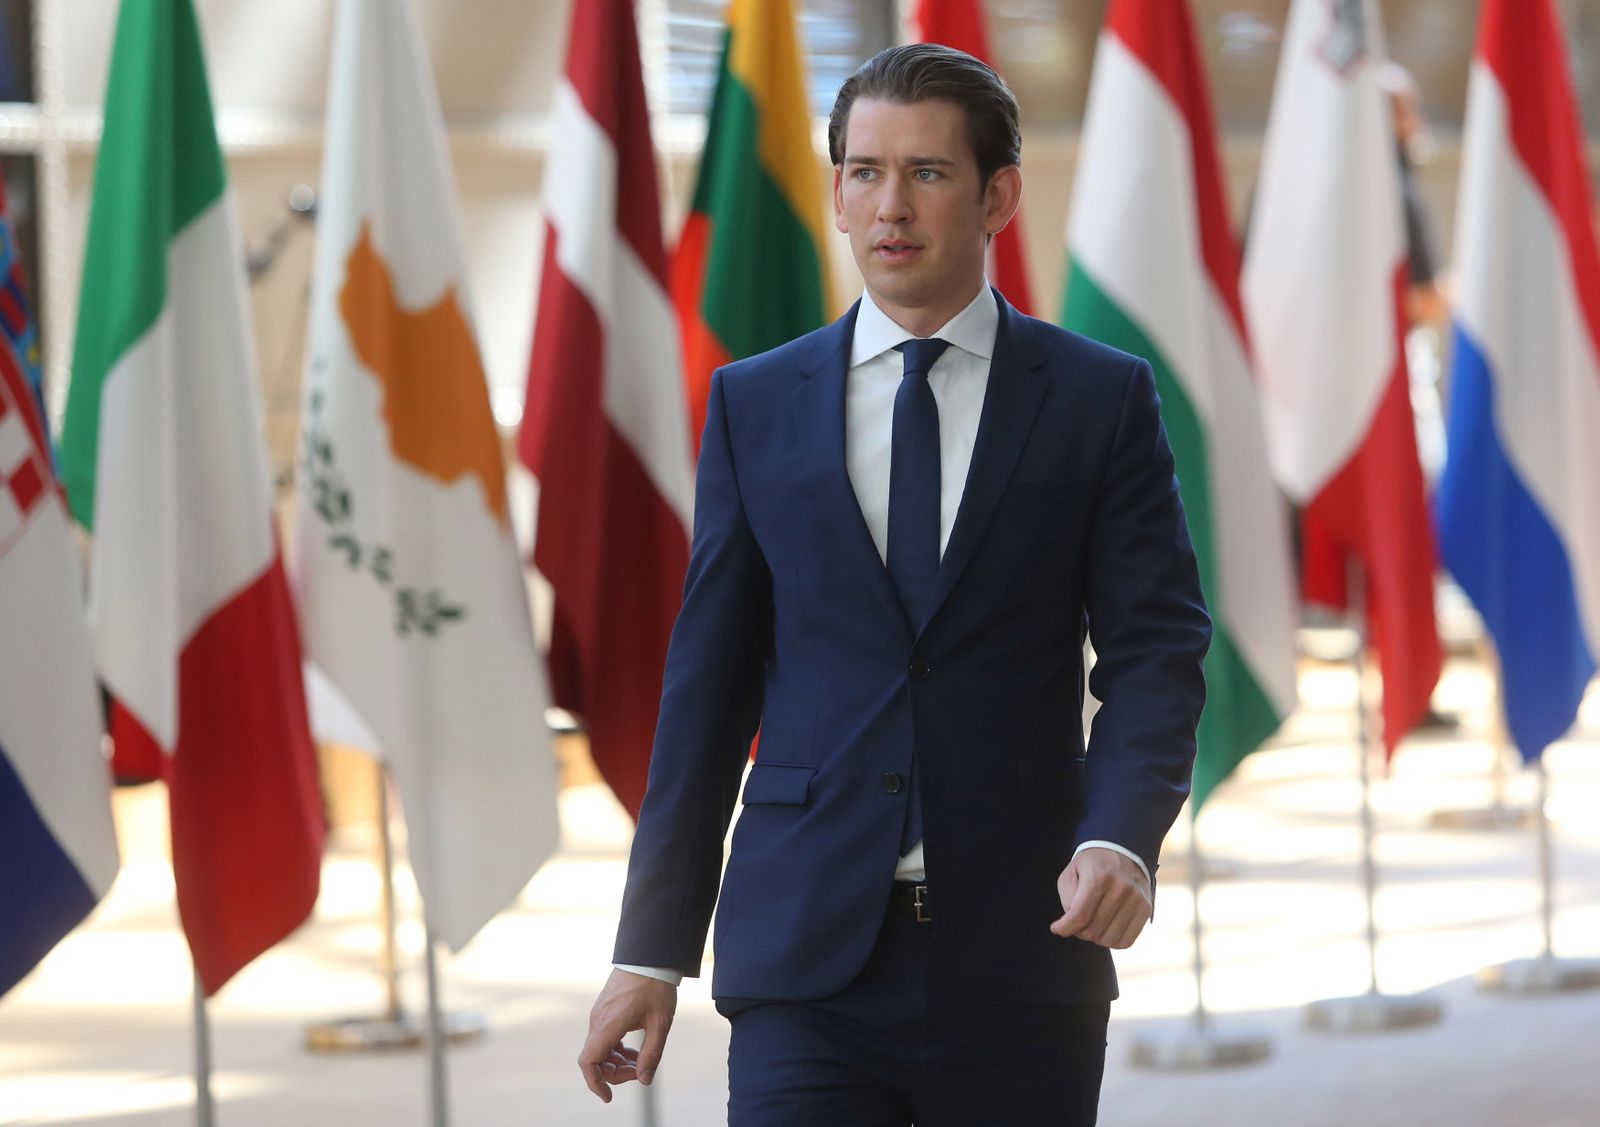 Austria's Chancellor Kurz arrives at an EU leaders summit in Brussels